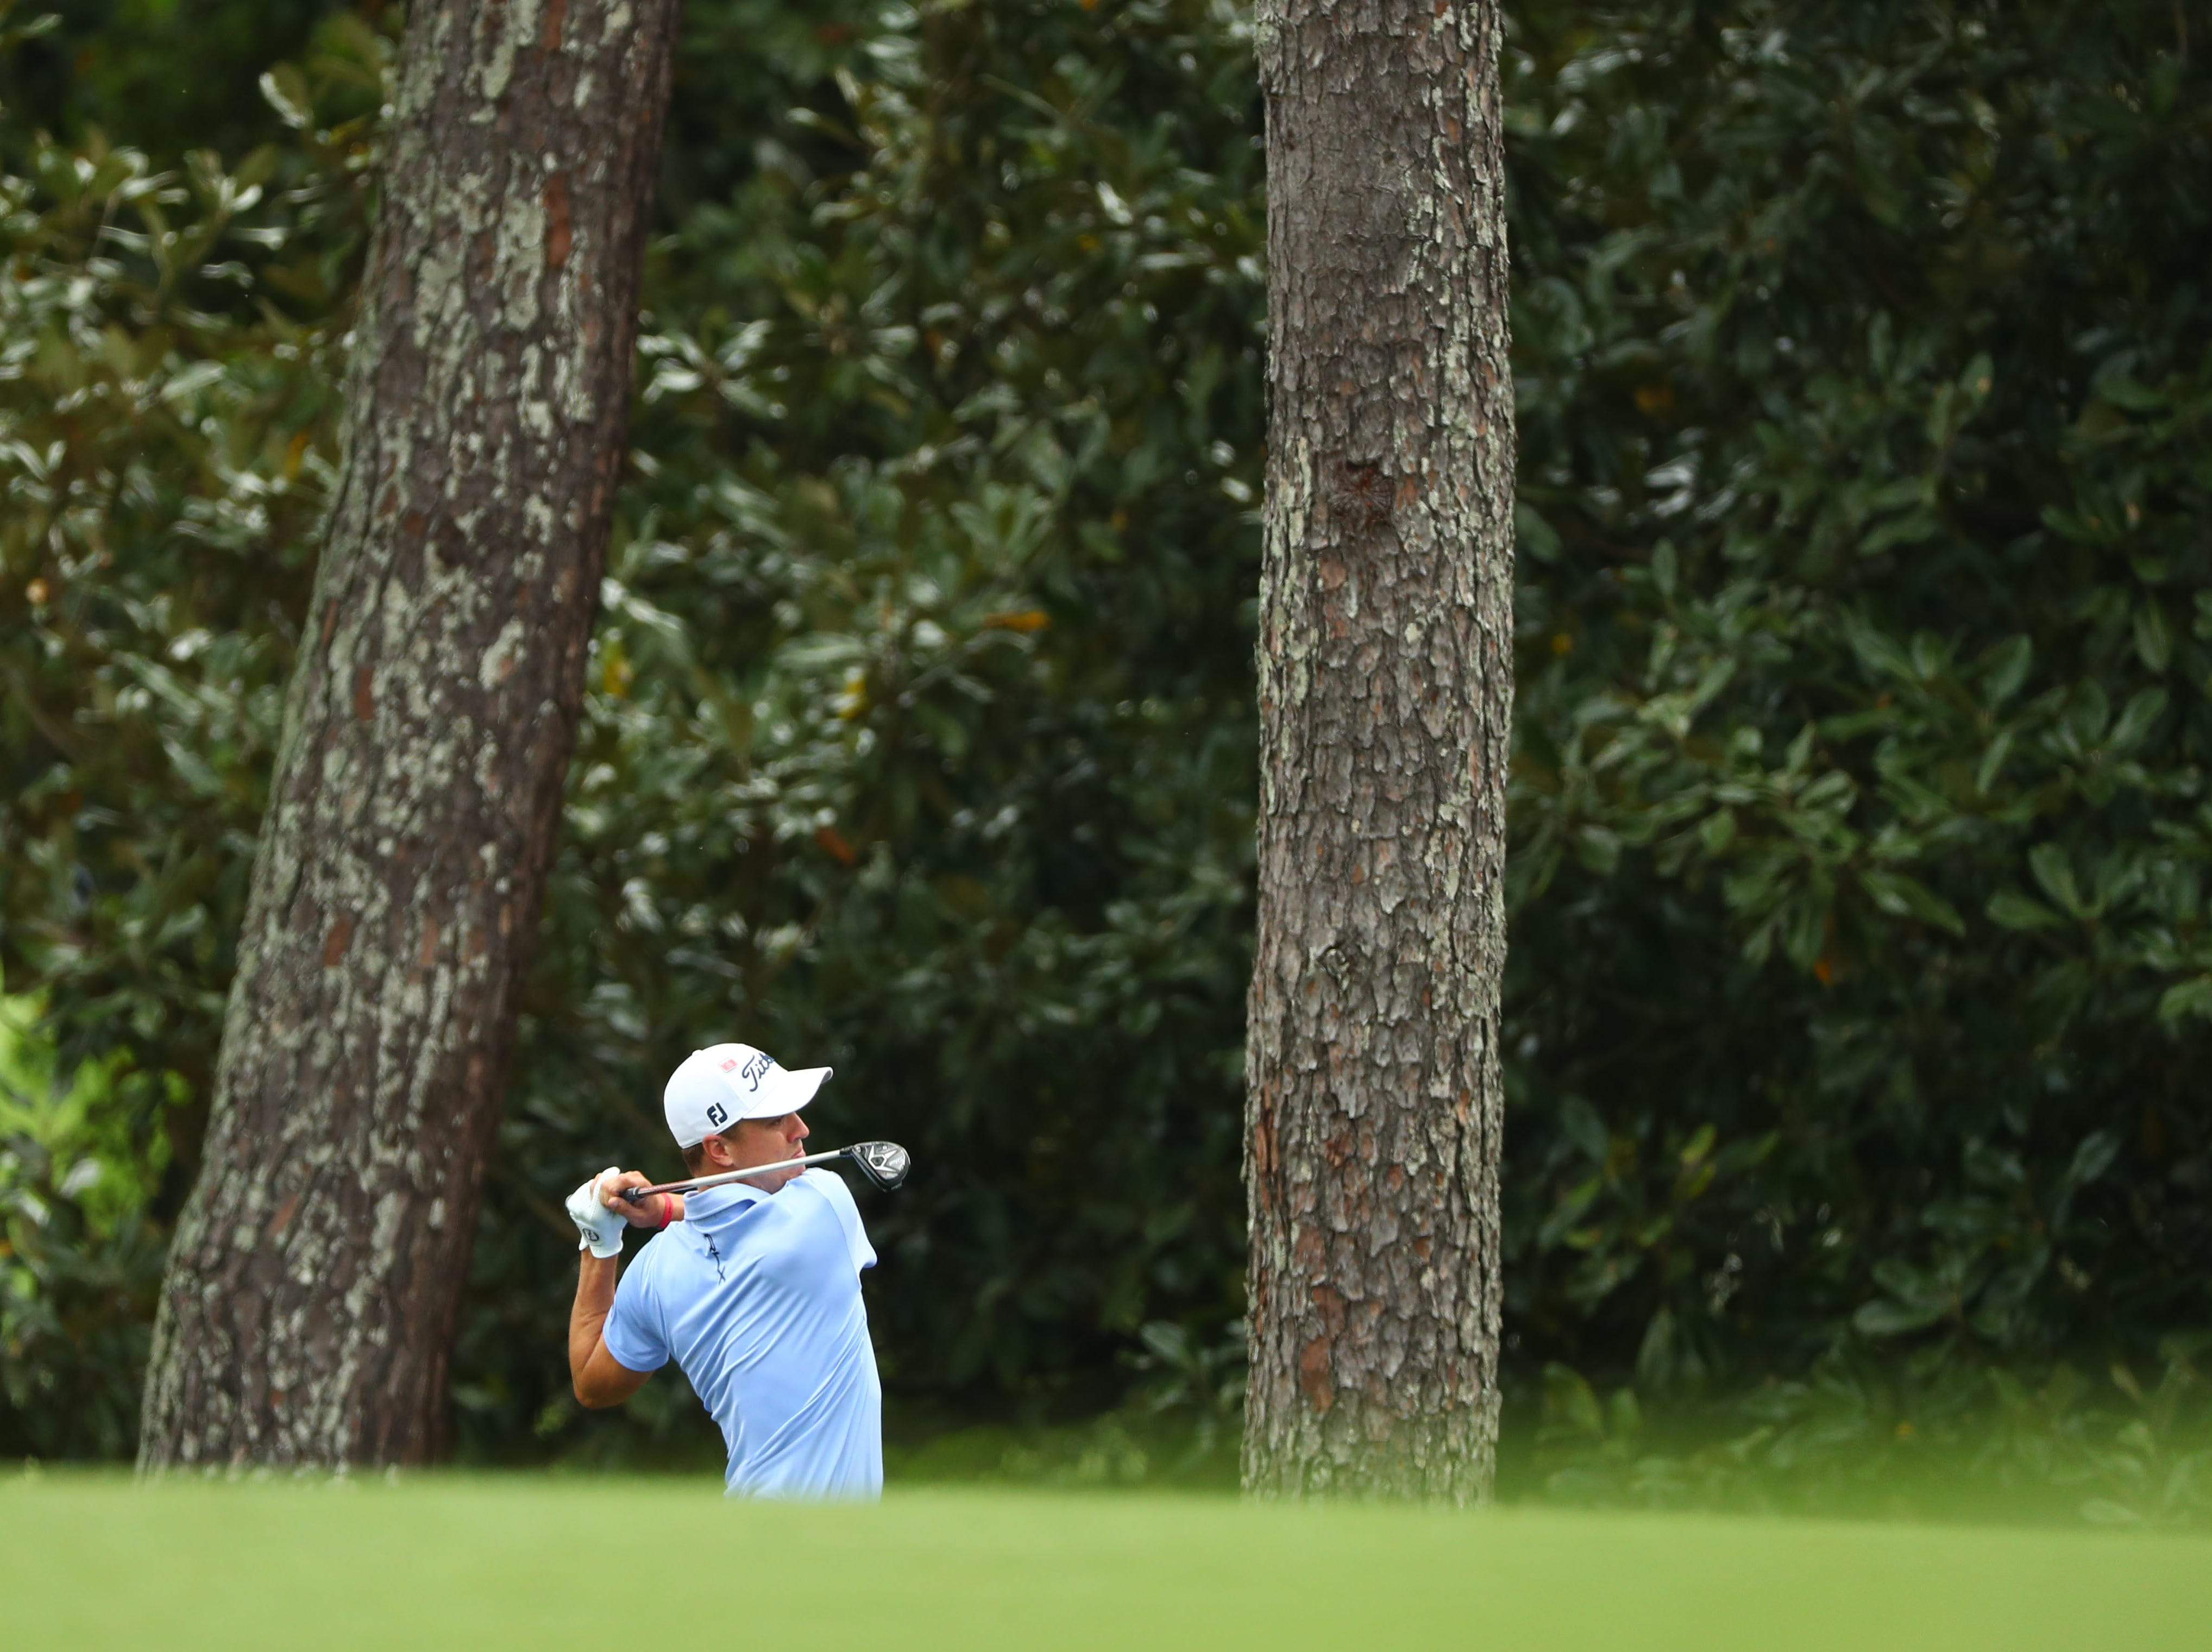 Apr 12, 2019; Augusta, GA, USA; Justin Thomas plays a shot on the 2nd hole during the second round of The Masters golf tournament at Augusta National Golf Club. Mandatory Credit: Rob Schumacher-USA TODAY Sports